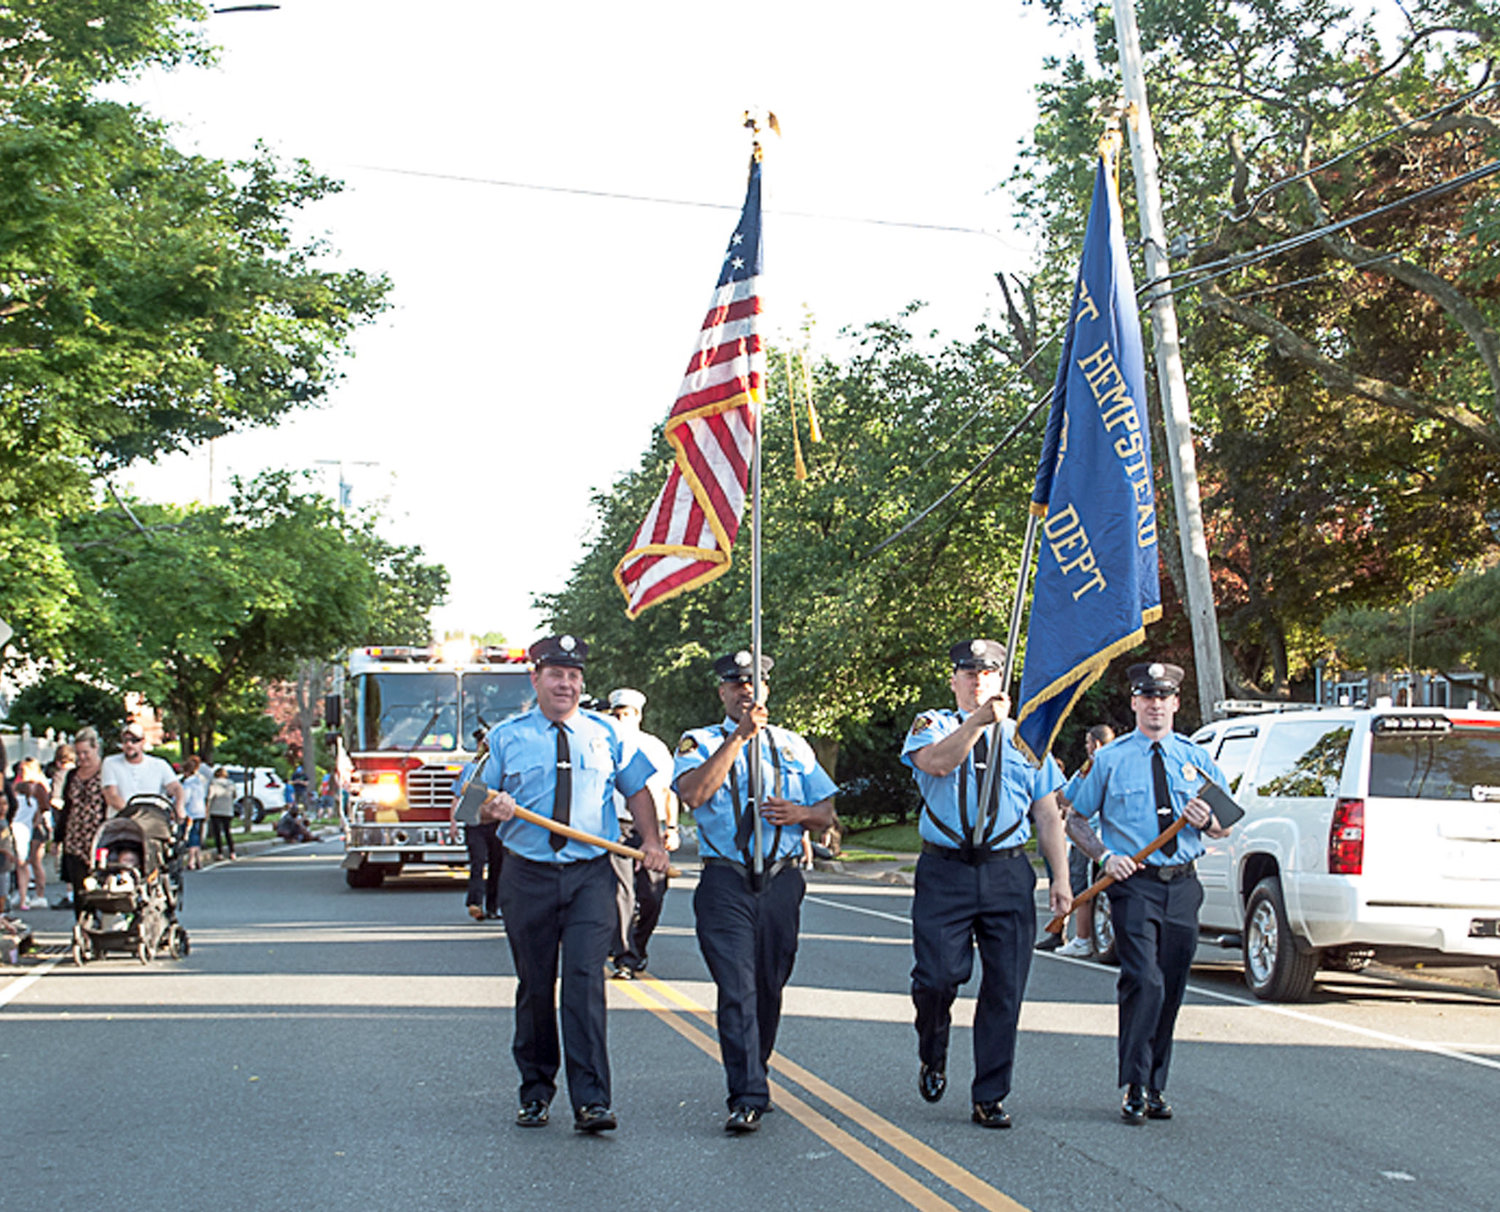 Members of the West Hempstead Fire Department also took part in the festivities.